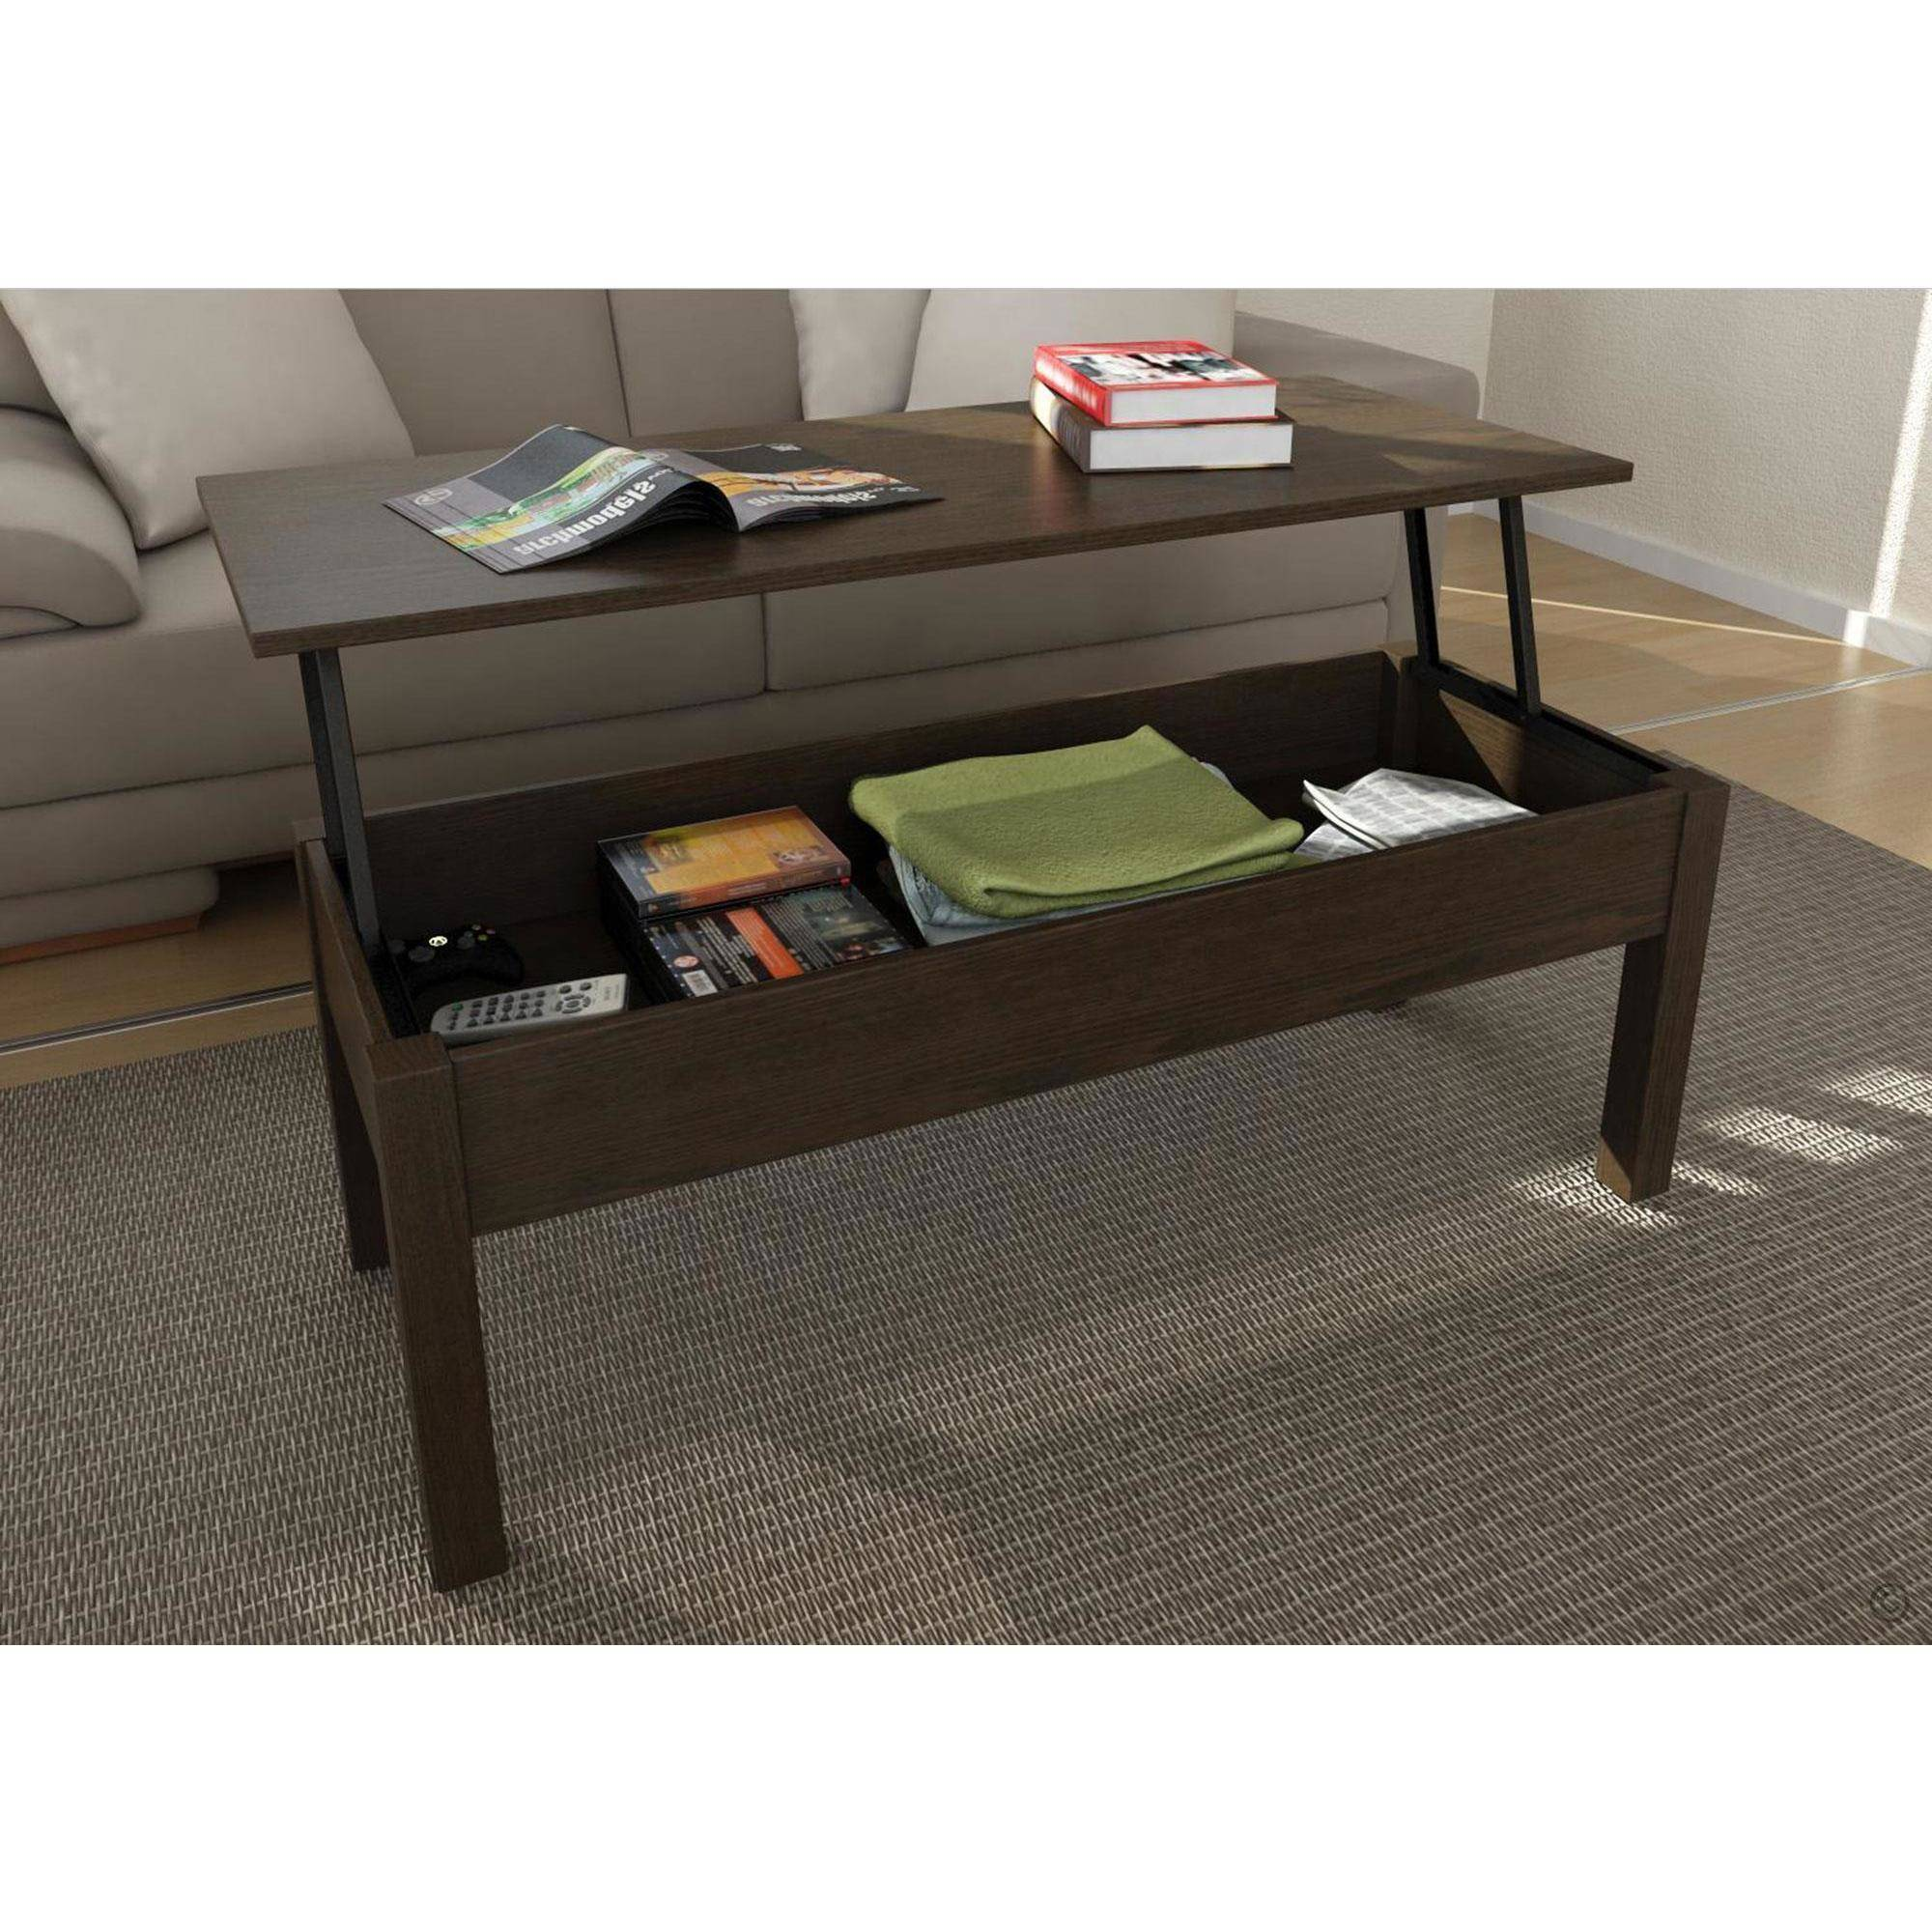 Mainstays Lift-Top Coffee Table, Multiple Colors